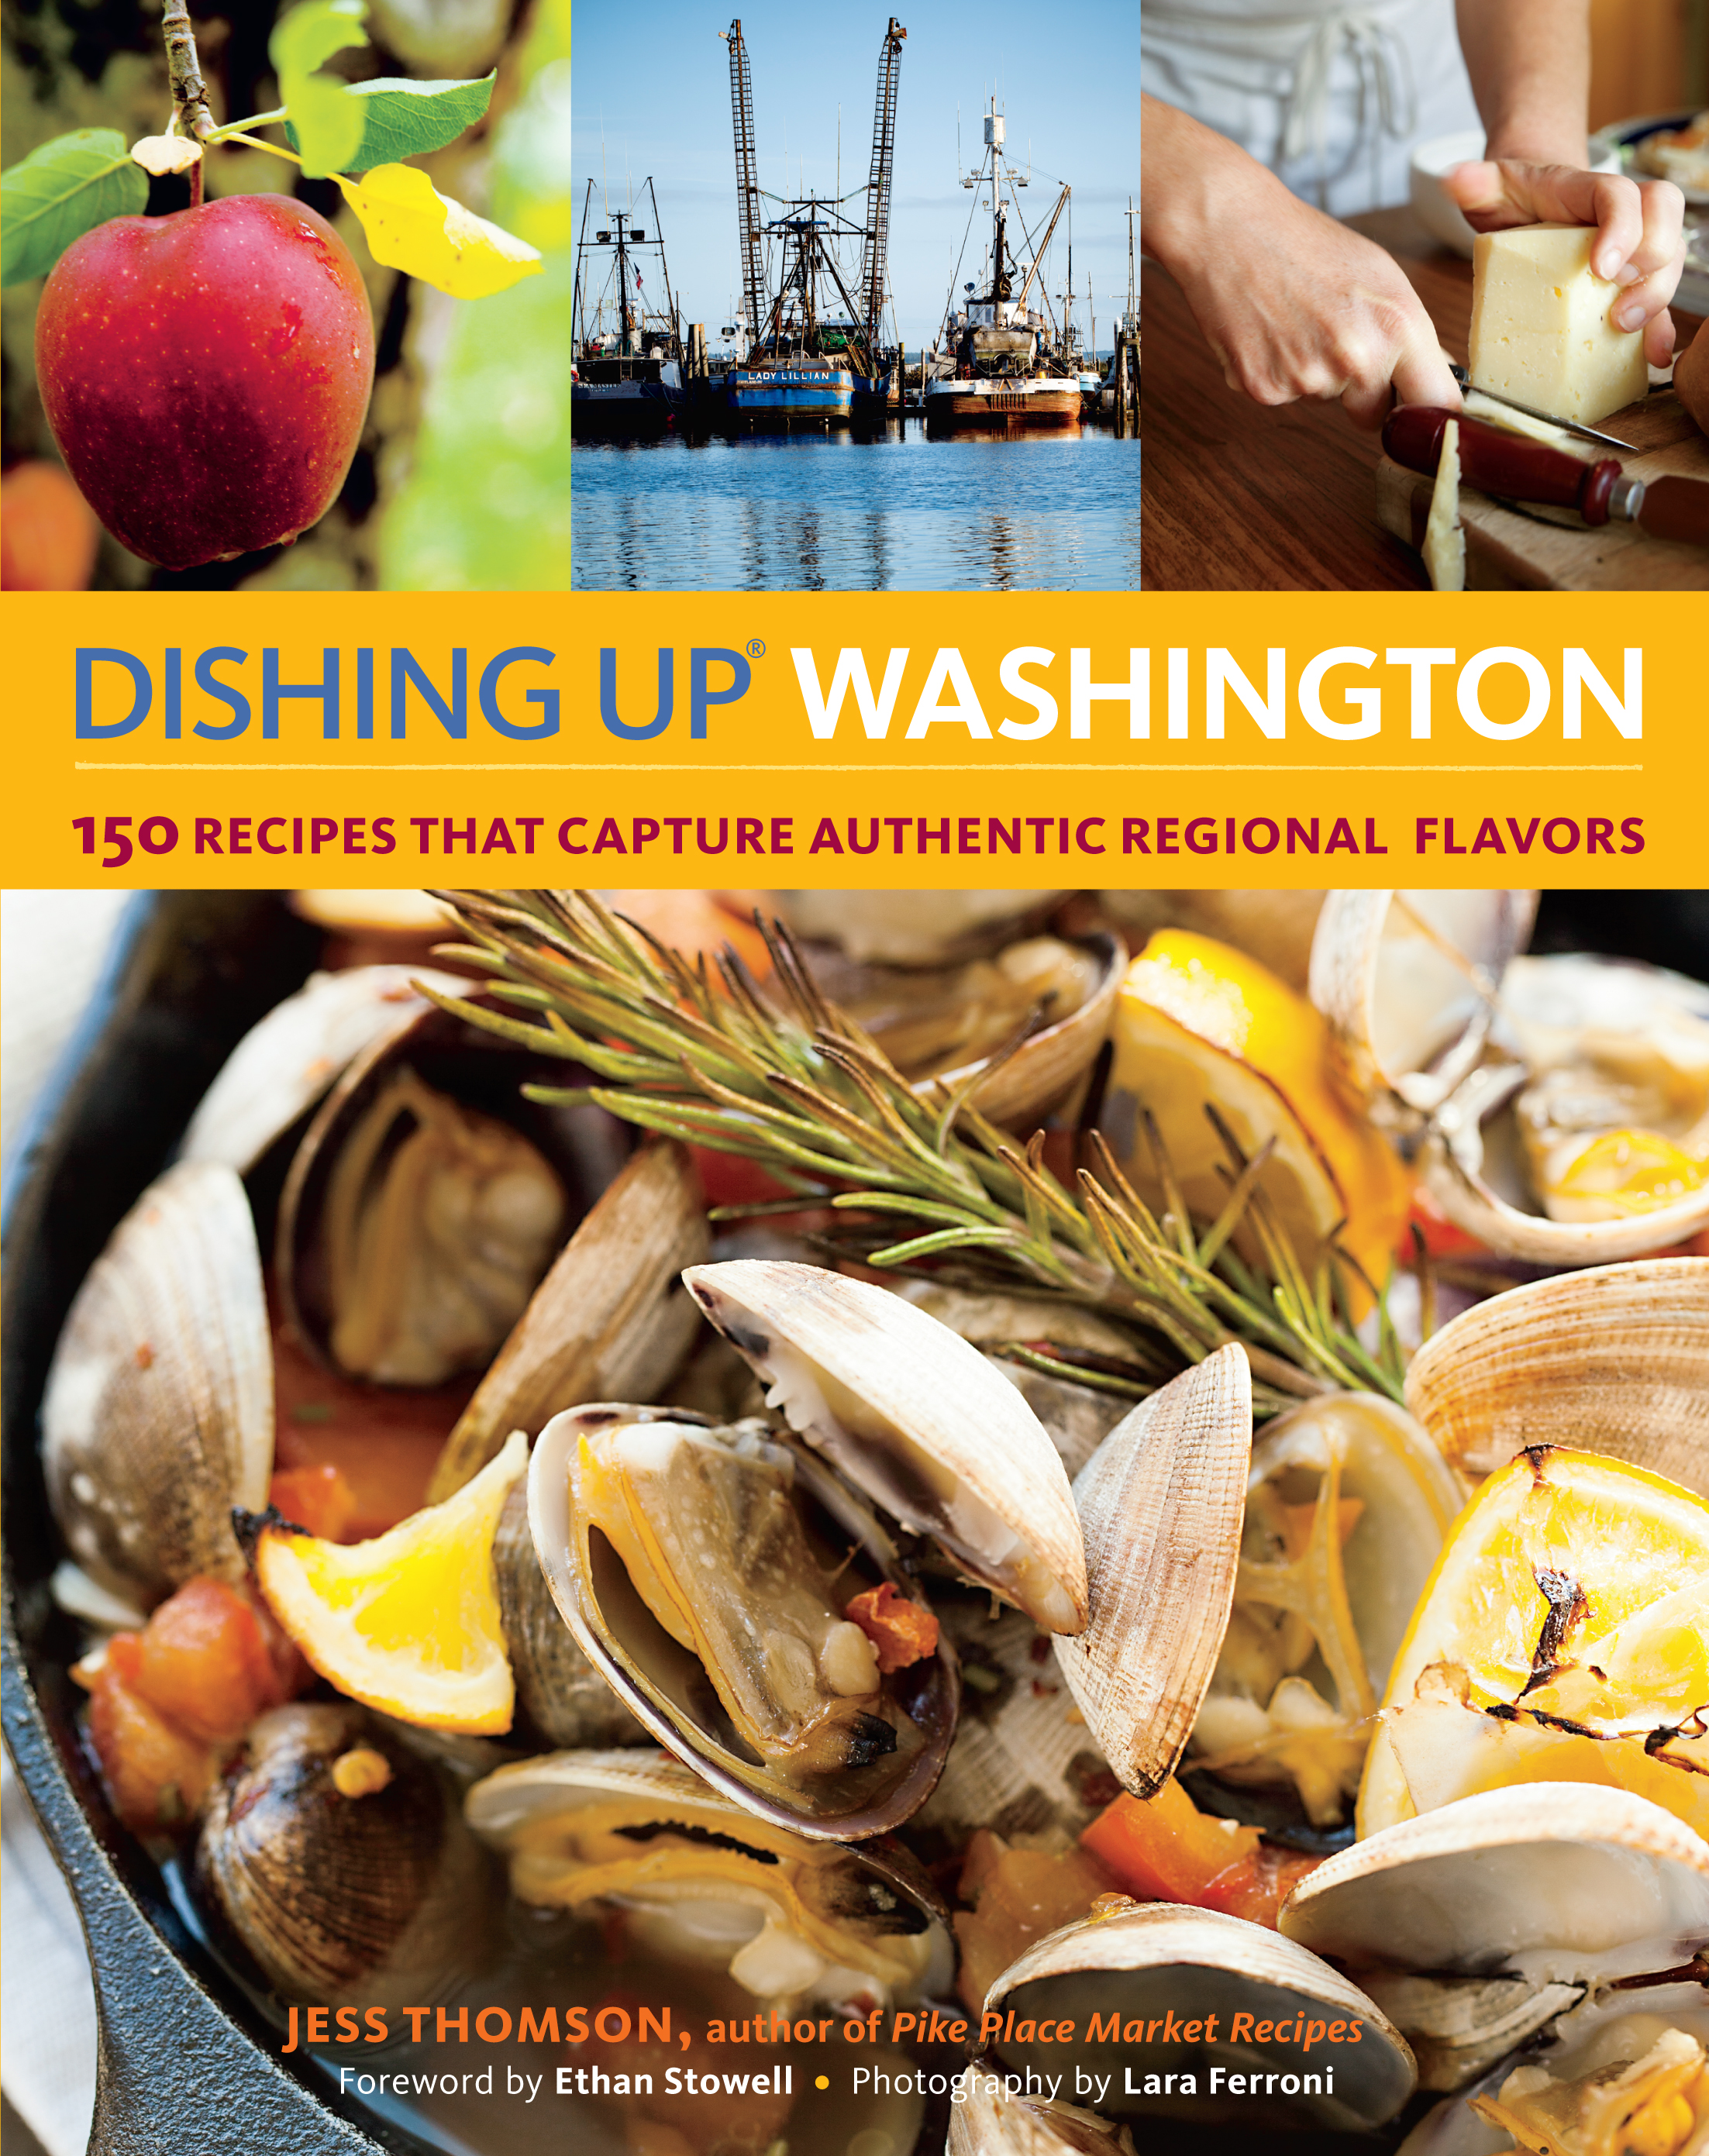 Dishing Up<sup>®</sup> Washington 150 Recipes That Capture Authentic Regional Flavors - Jess Thomson